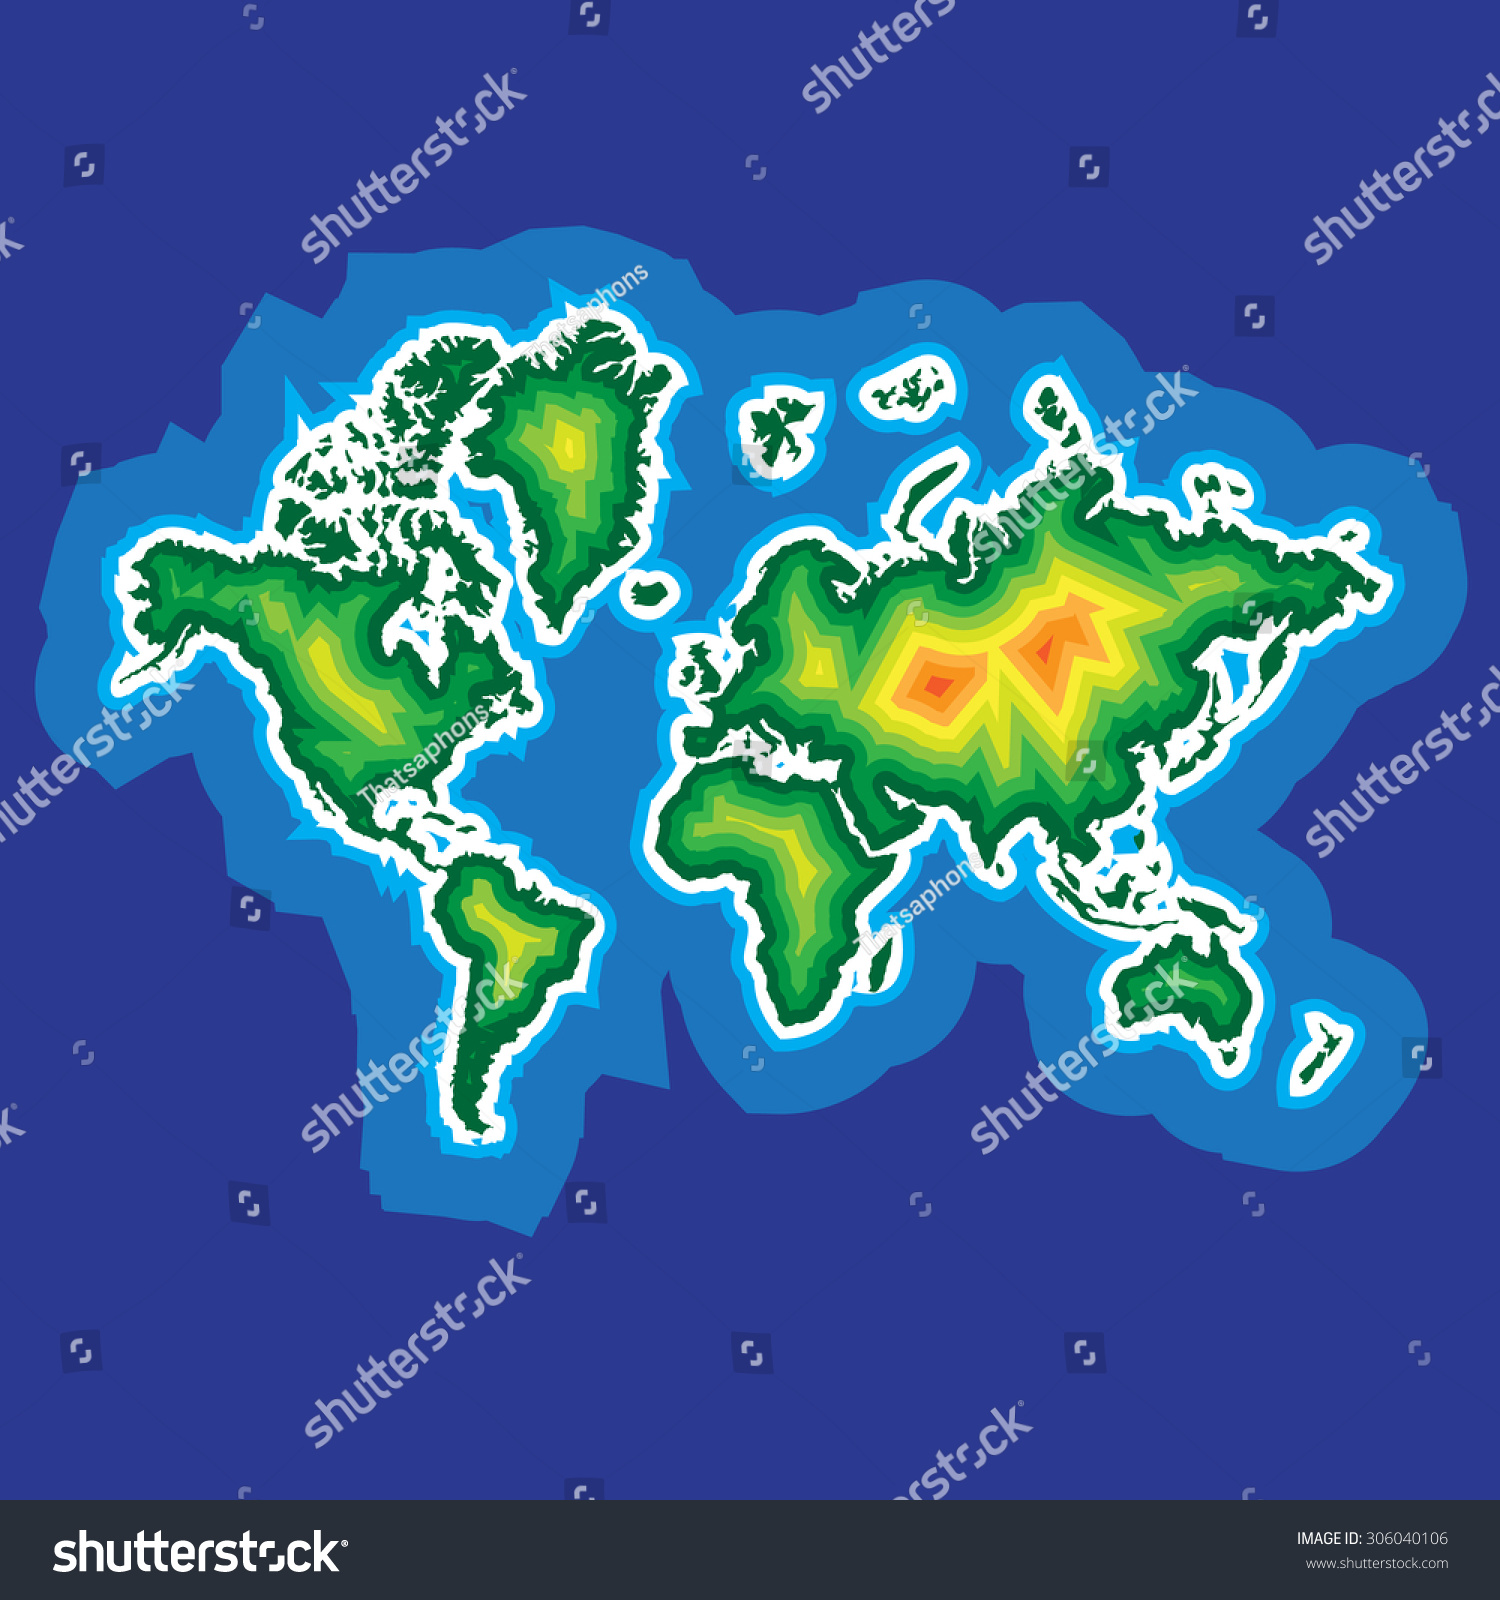 Color layer world map web mobile stock vector 306040106 shutterstock color layer world map for web and mobile app illustration vector gumiabroncs Gallery